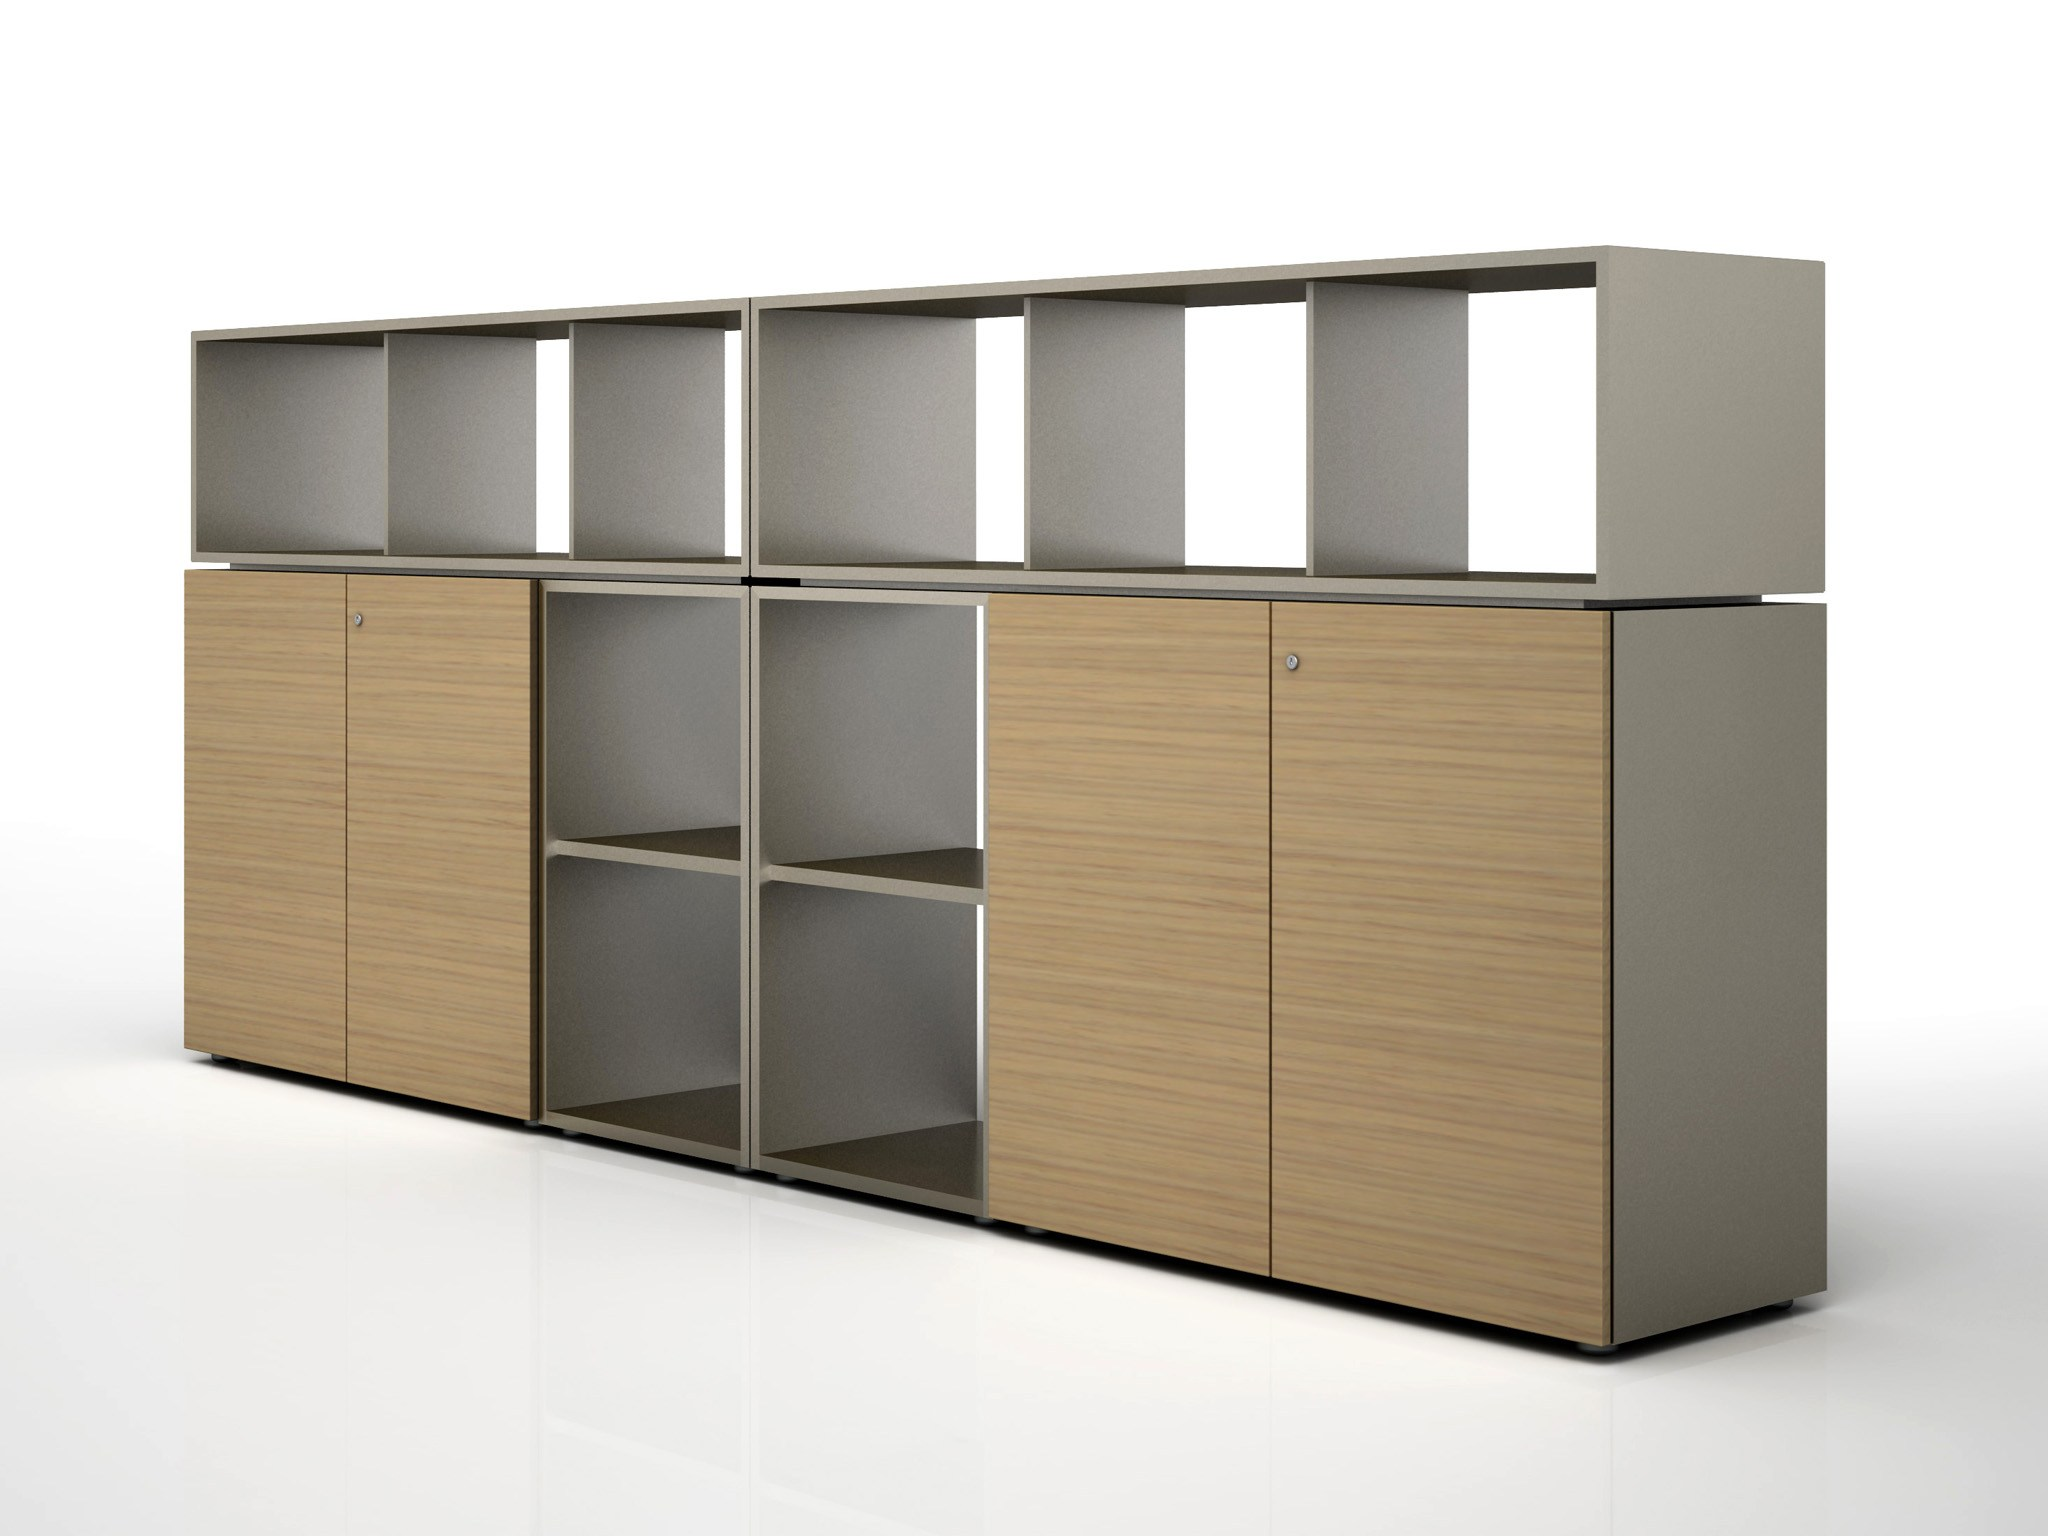 Office Storage Units Modular Wooden Office Storage Unit Case By Estel Group